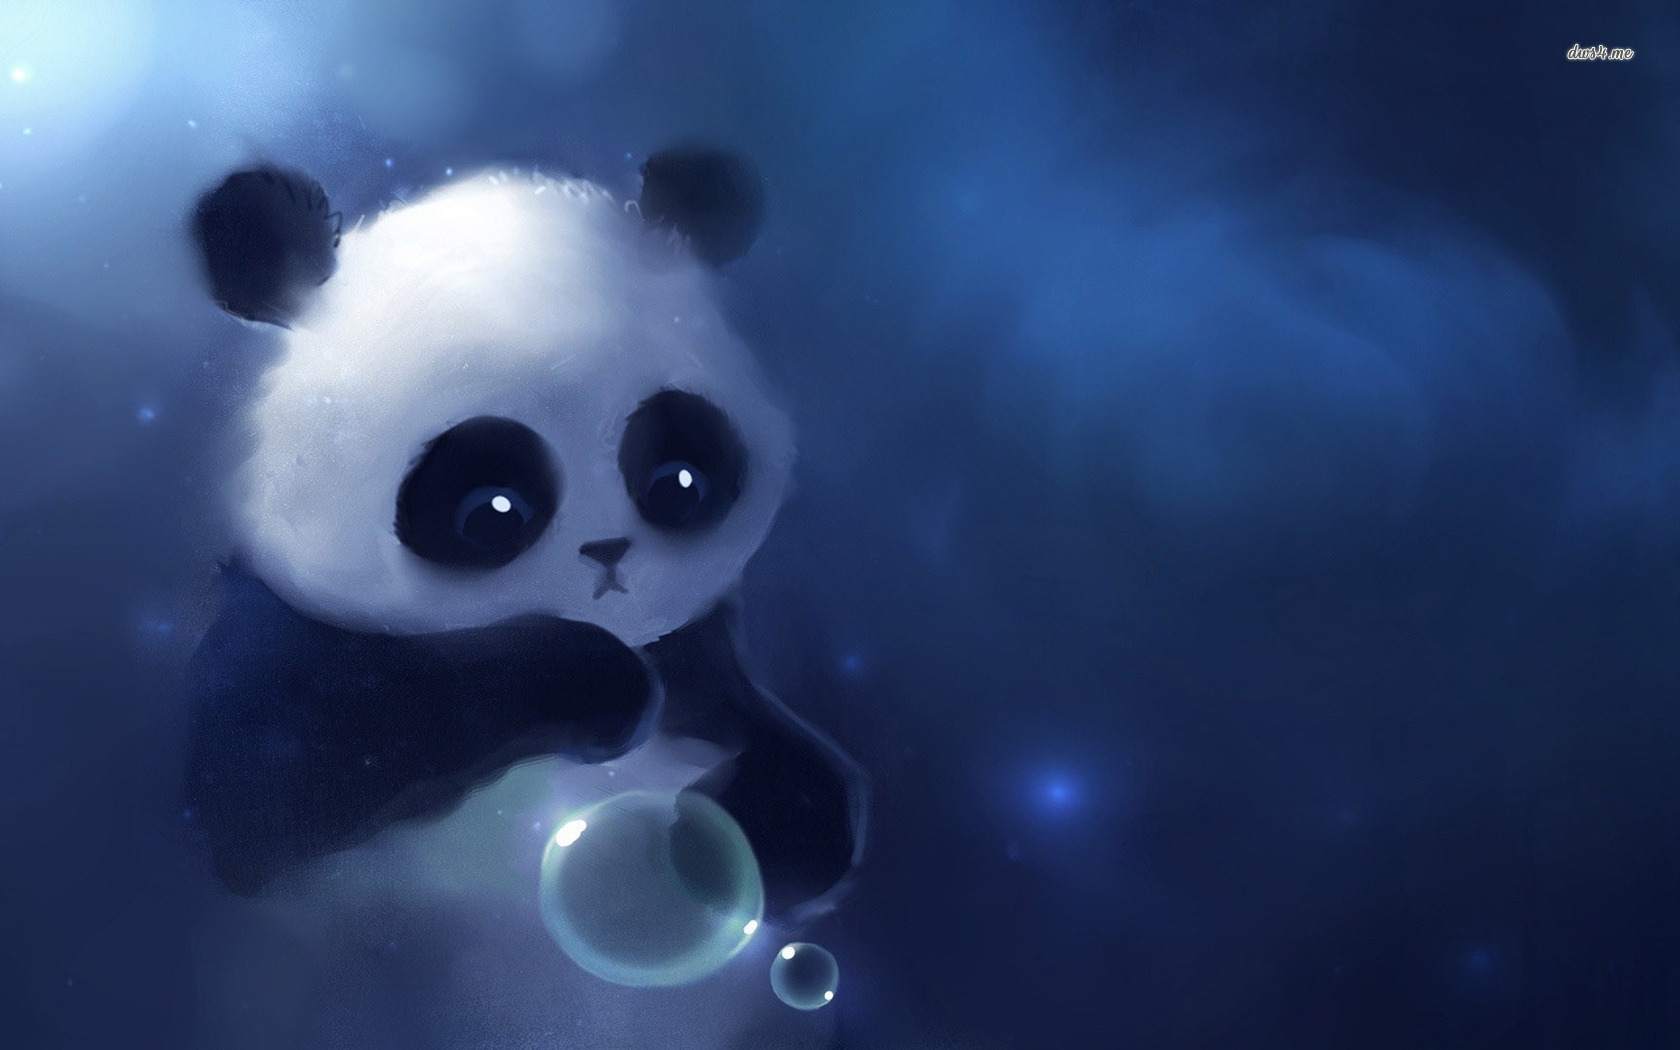 Cute baby panda wallpaper 1280x800 Cute baby panda wallpaper 1366x768 1680x1050